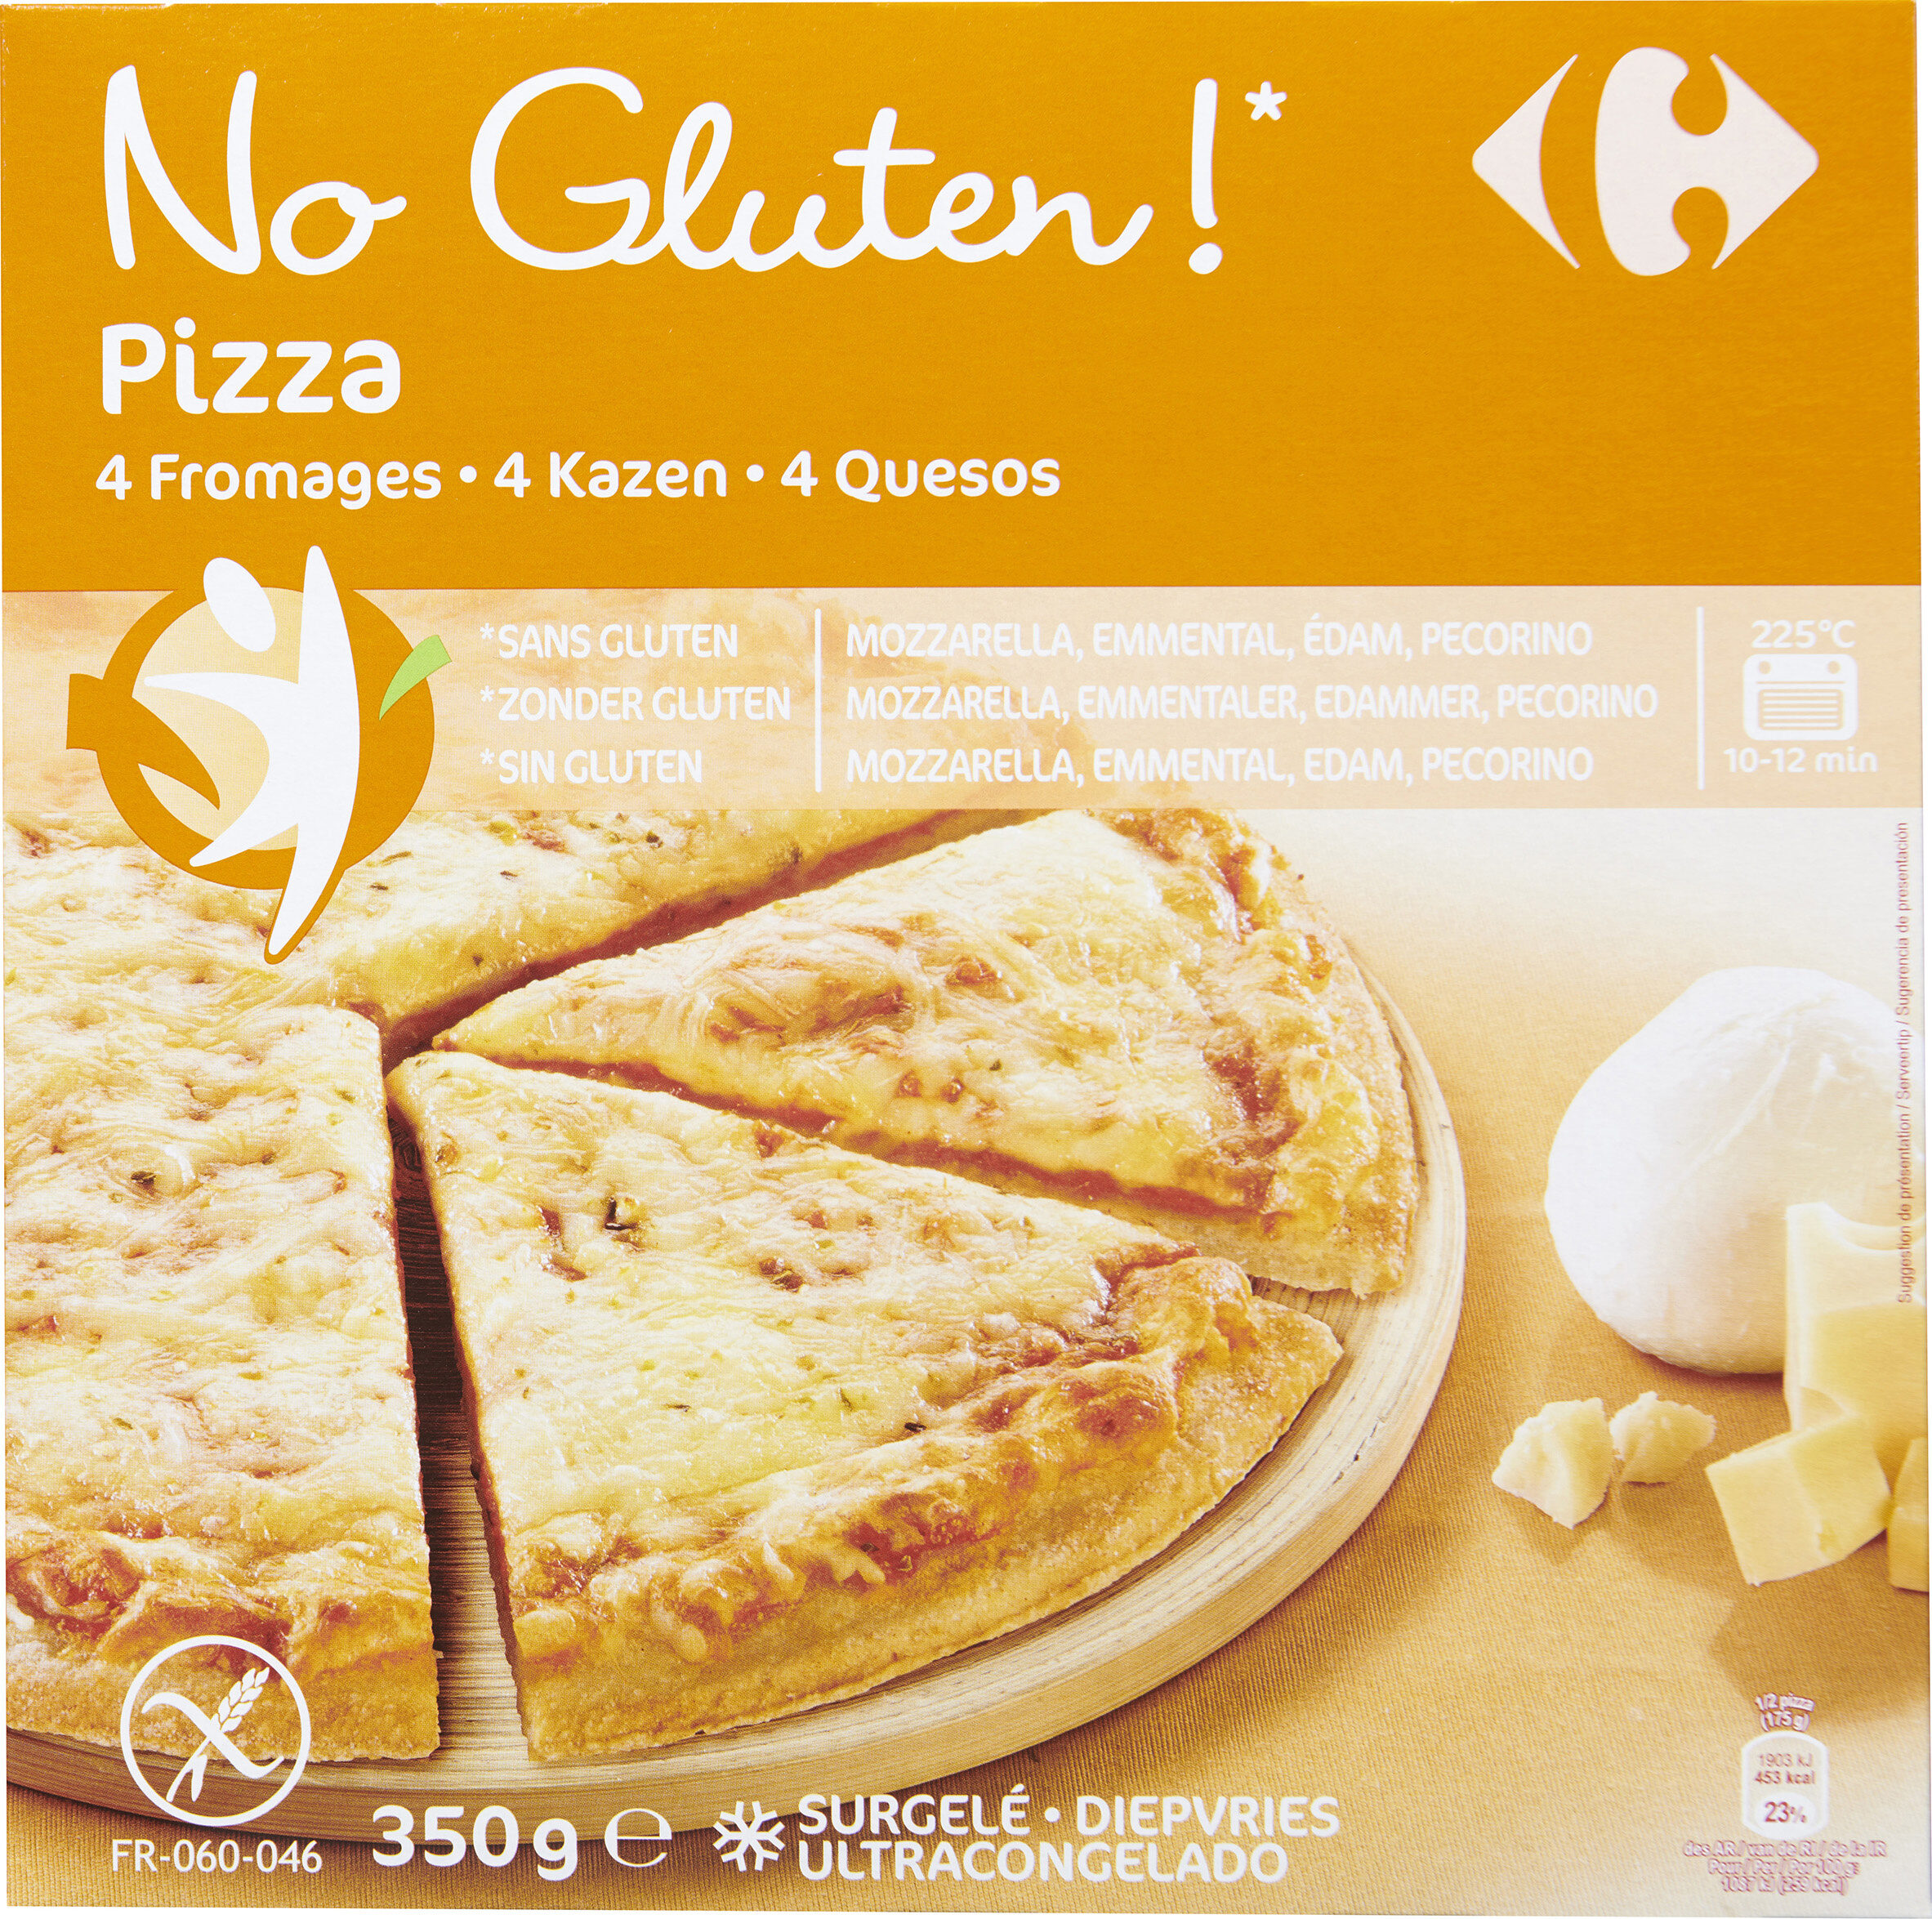 Pizza 4 fromages Sans gluten - Carrefour - 350 g